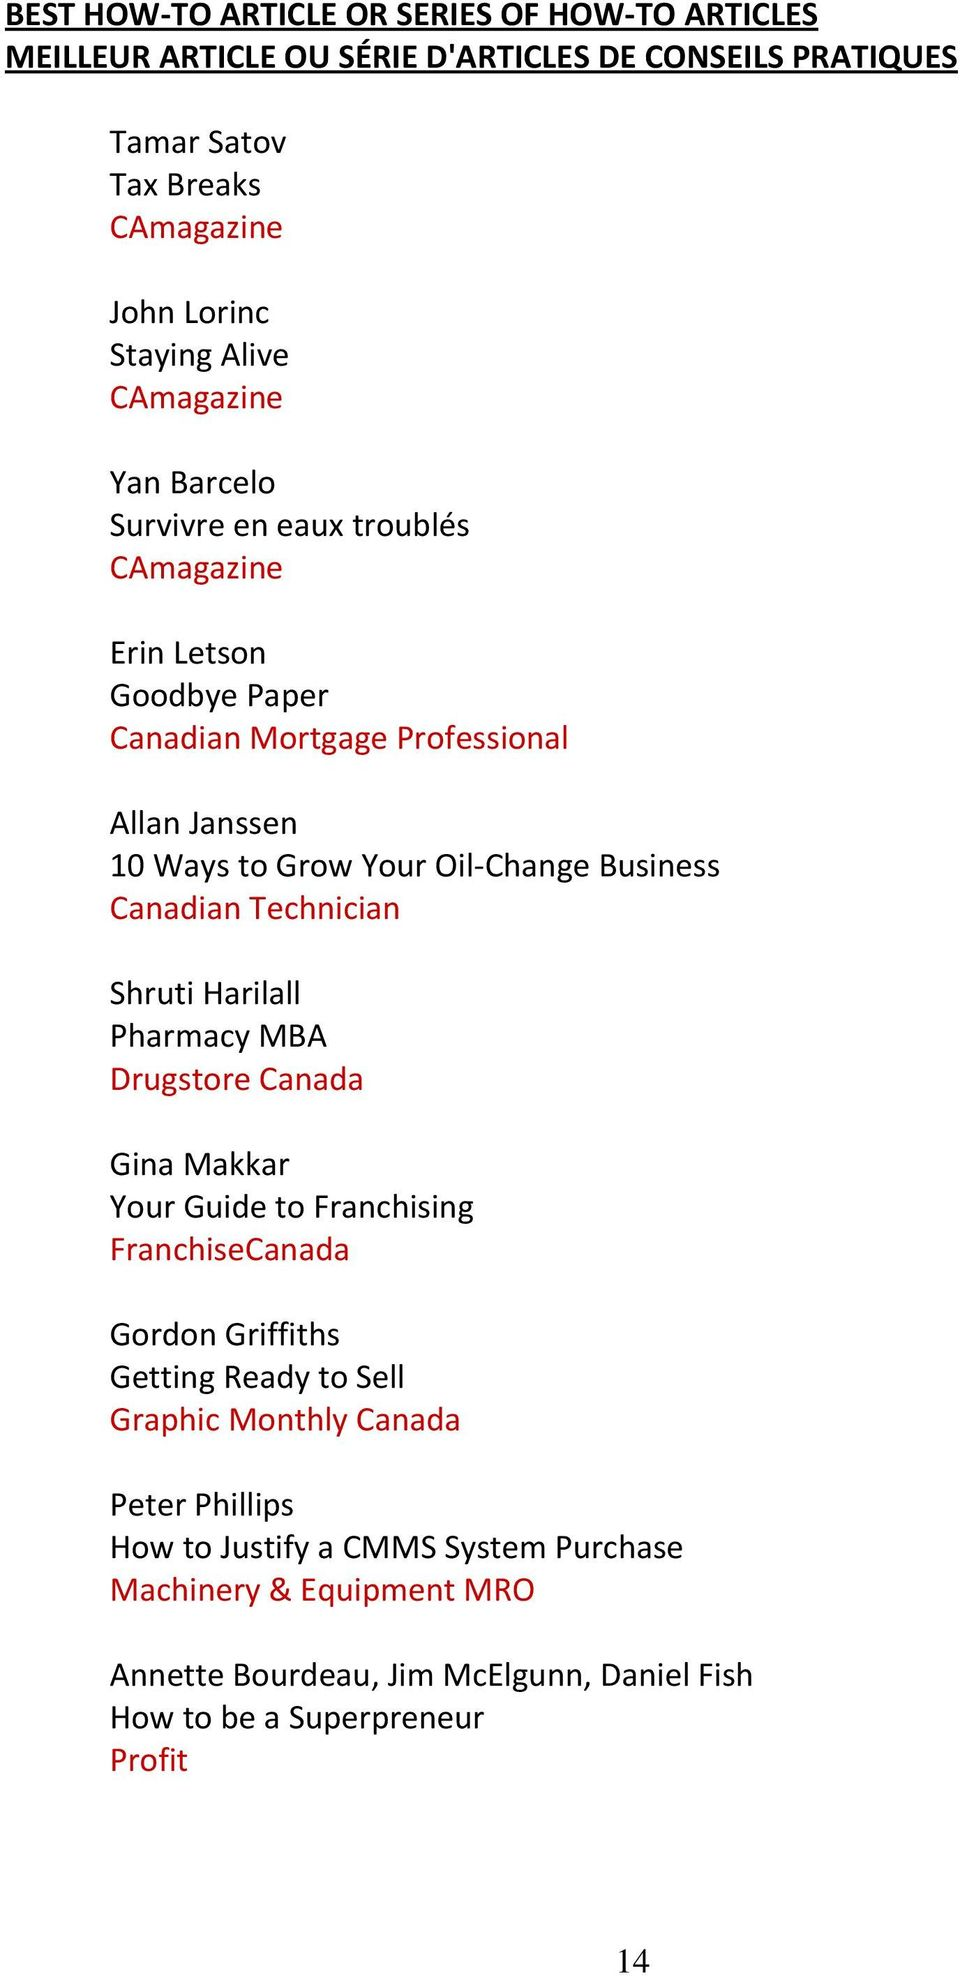 Technician Shruti Harilall Pharmacy MBA Drugstore Canada Gina Makkar Your Guide to Franchising FranchiseCanada Gordon Griffiths Getting Ready to Sell Graphic